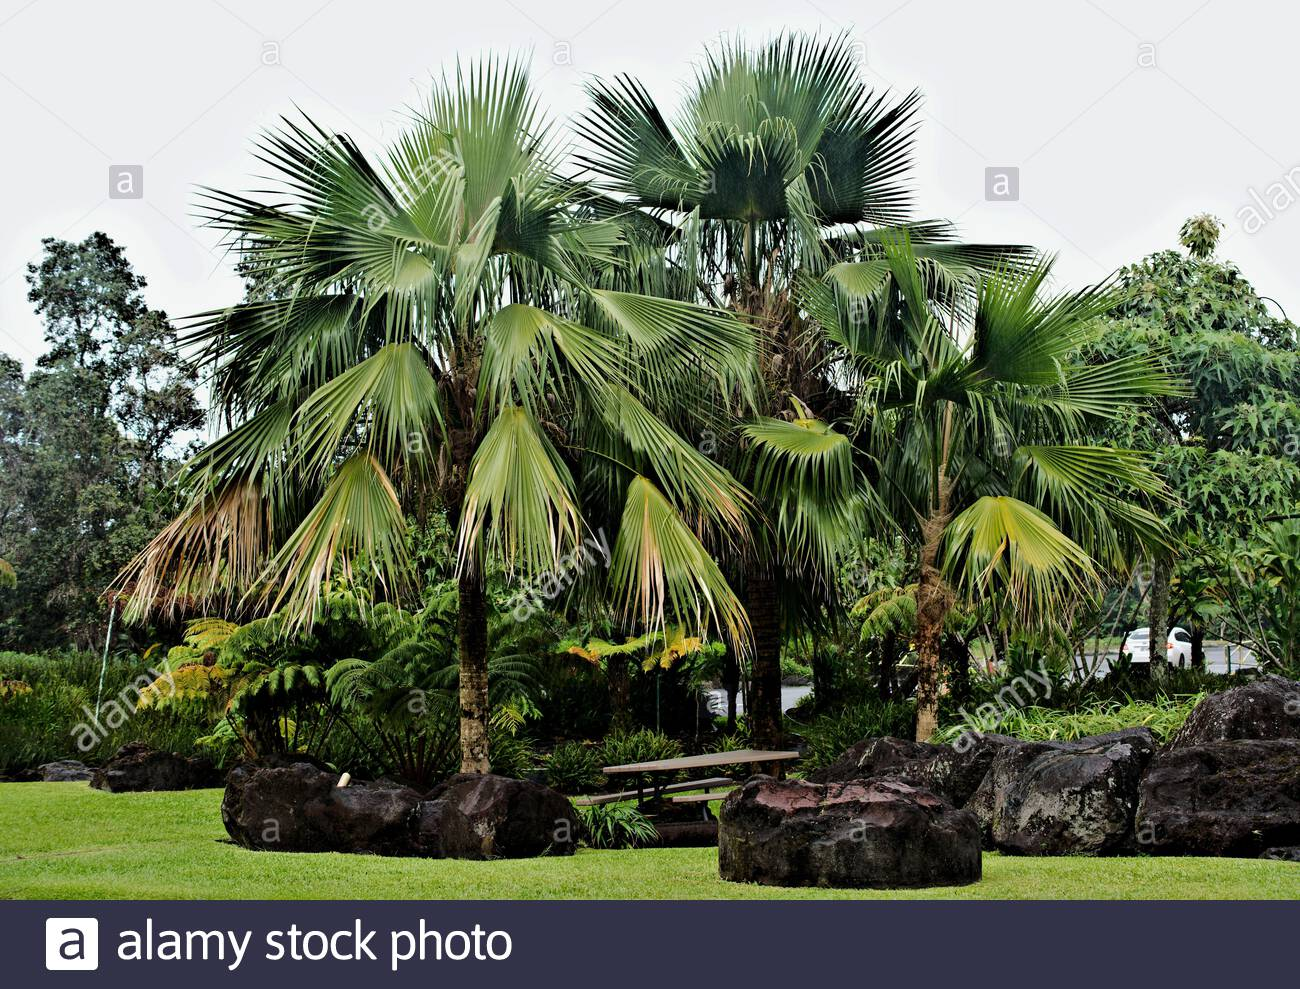 Tropical Garden Landscape With Group Of Palm Trees As A Focal